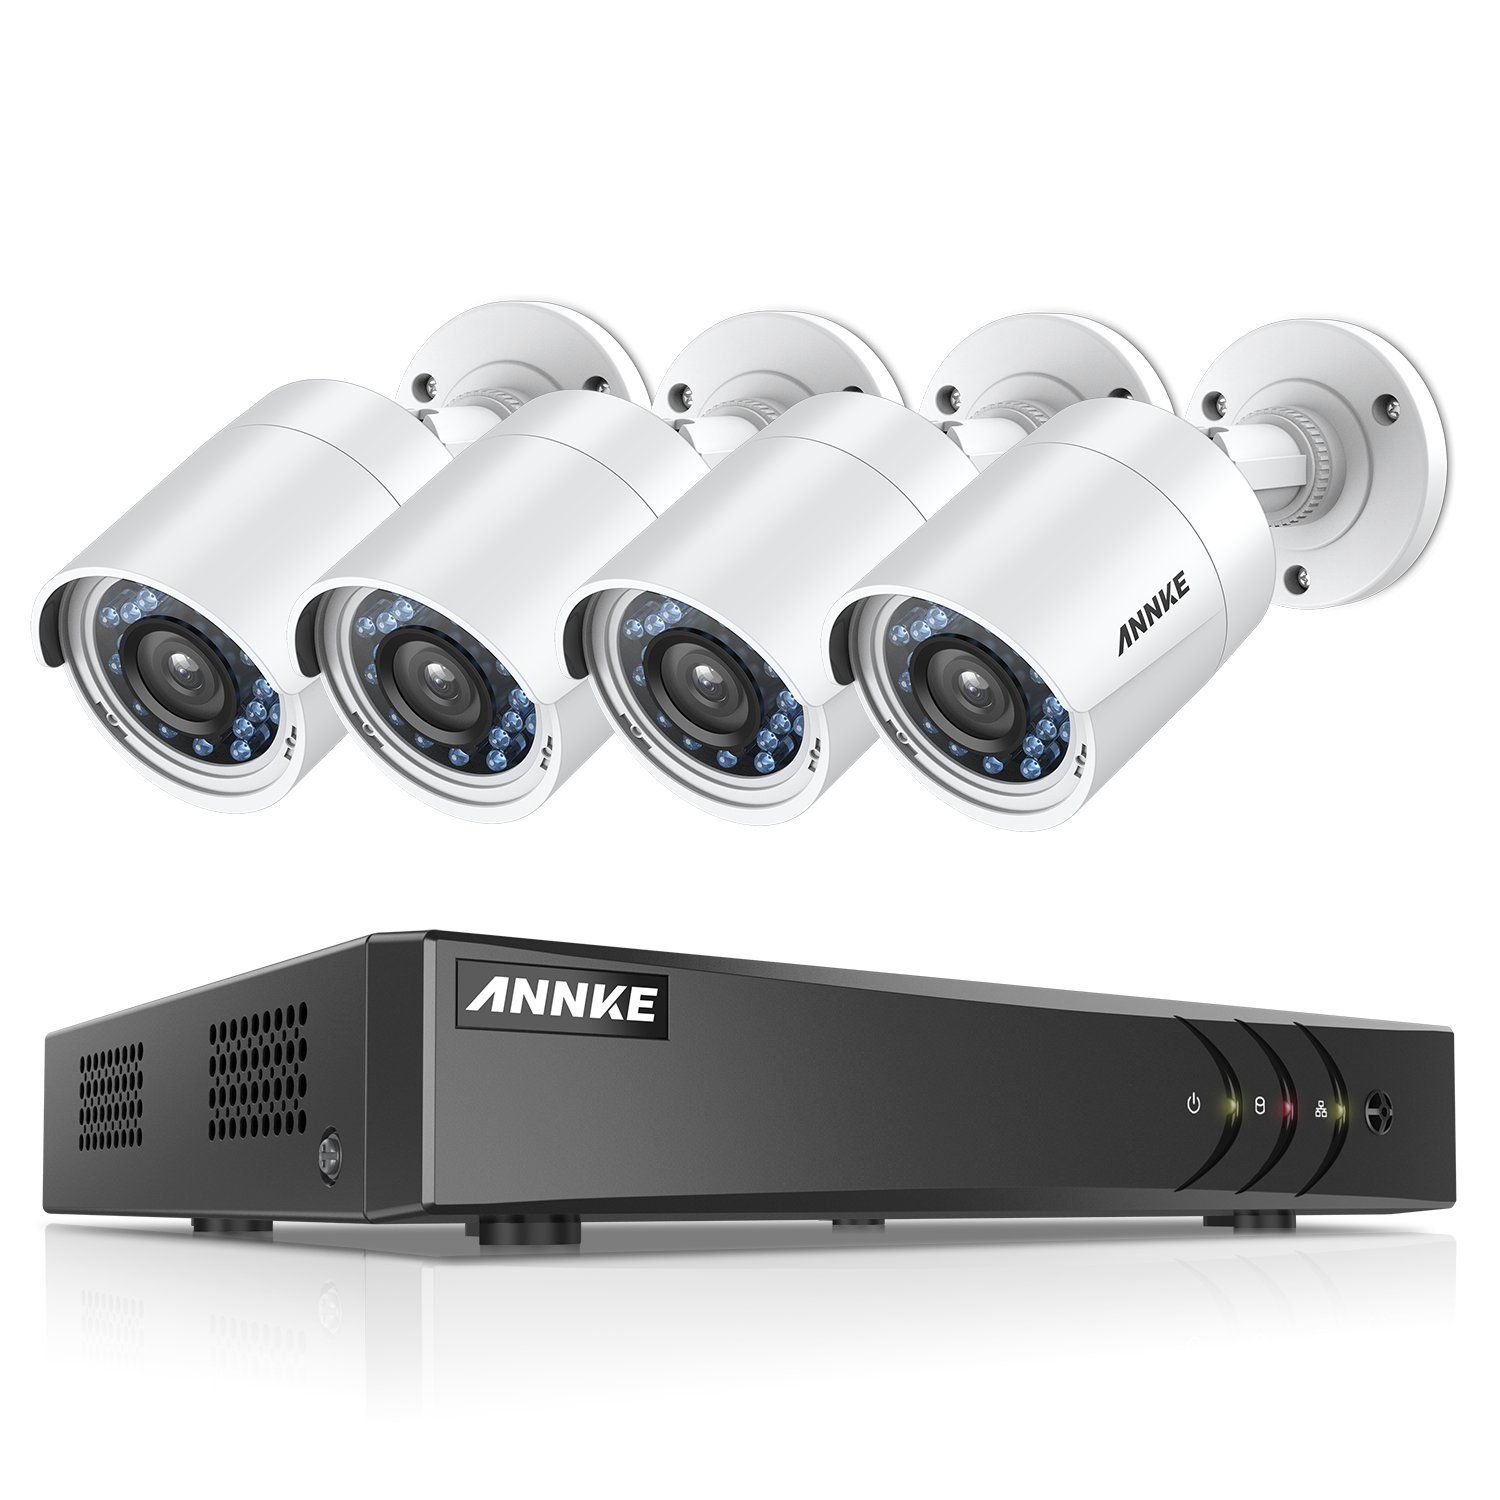 ANNKE Security Camera Systems 4CH 1080P Lite H 264 DVR and 4